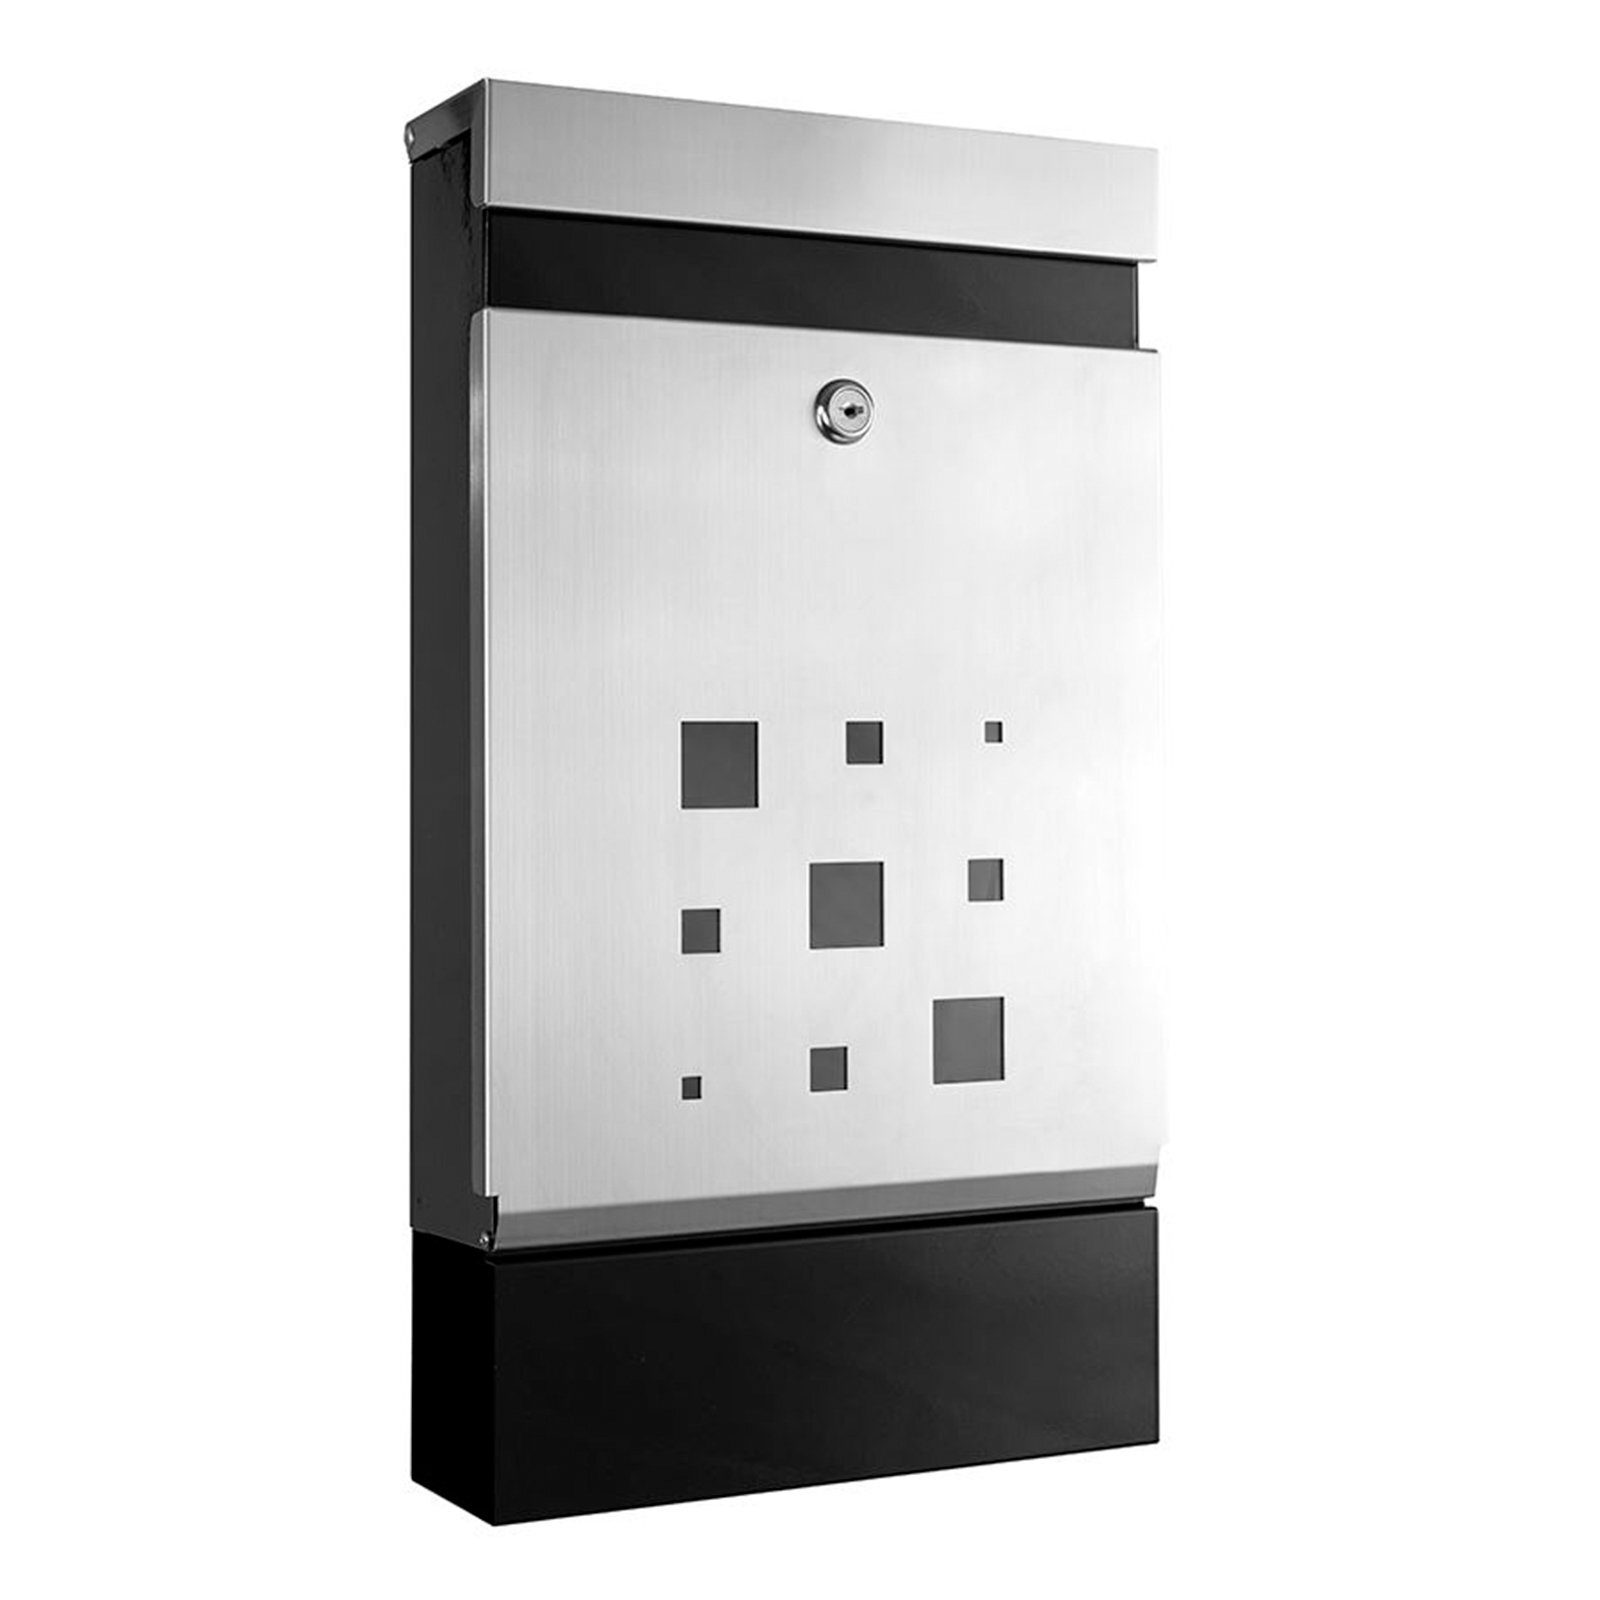 Sandleford Black / Stainless Steel Wall Mounted Caddy Letterbox